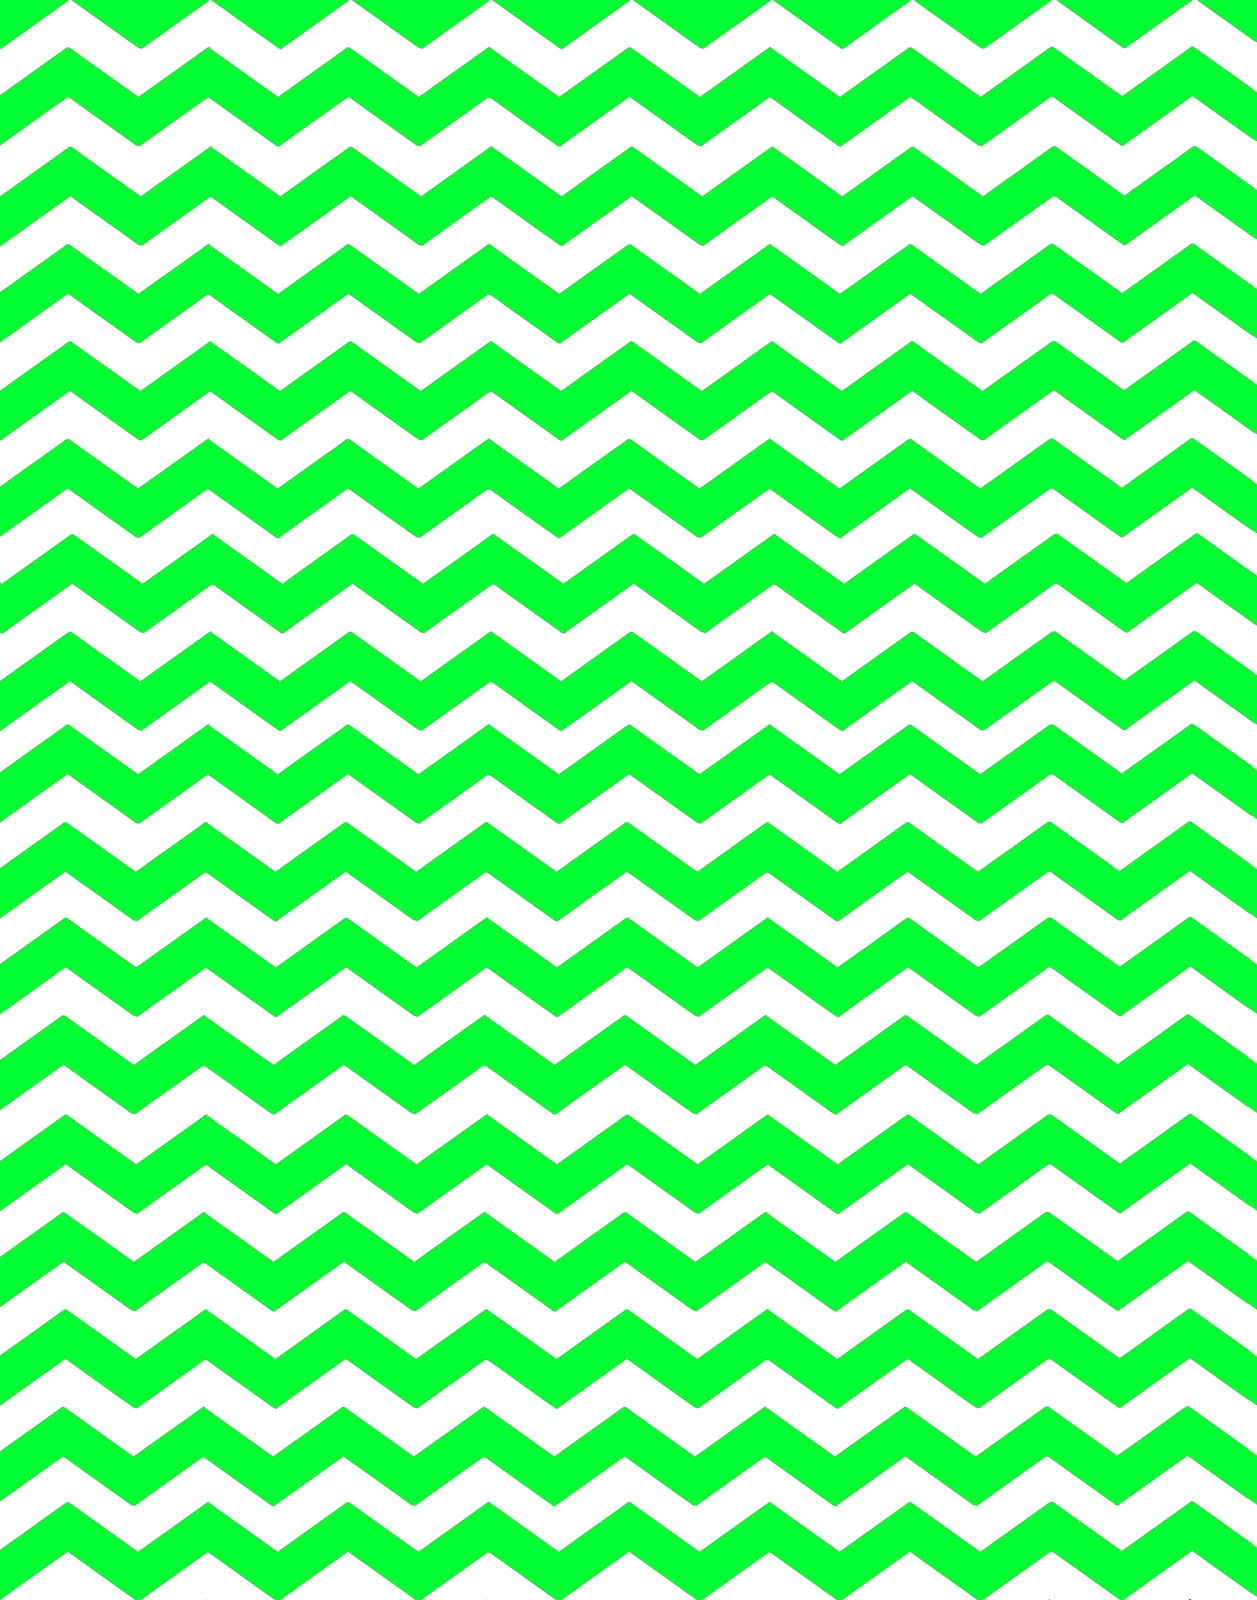 Doodlecraft: 16 New Colors Chevron background patterns!